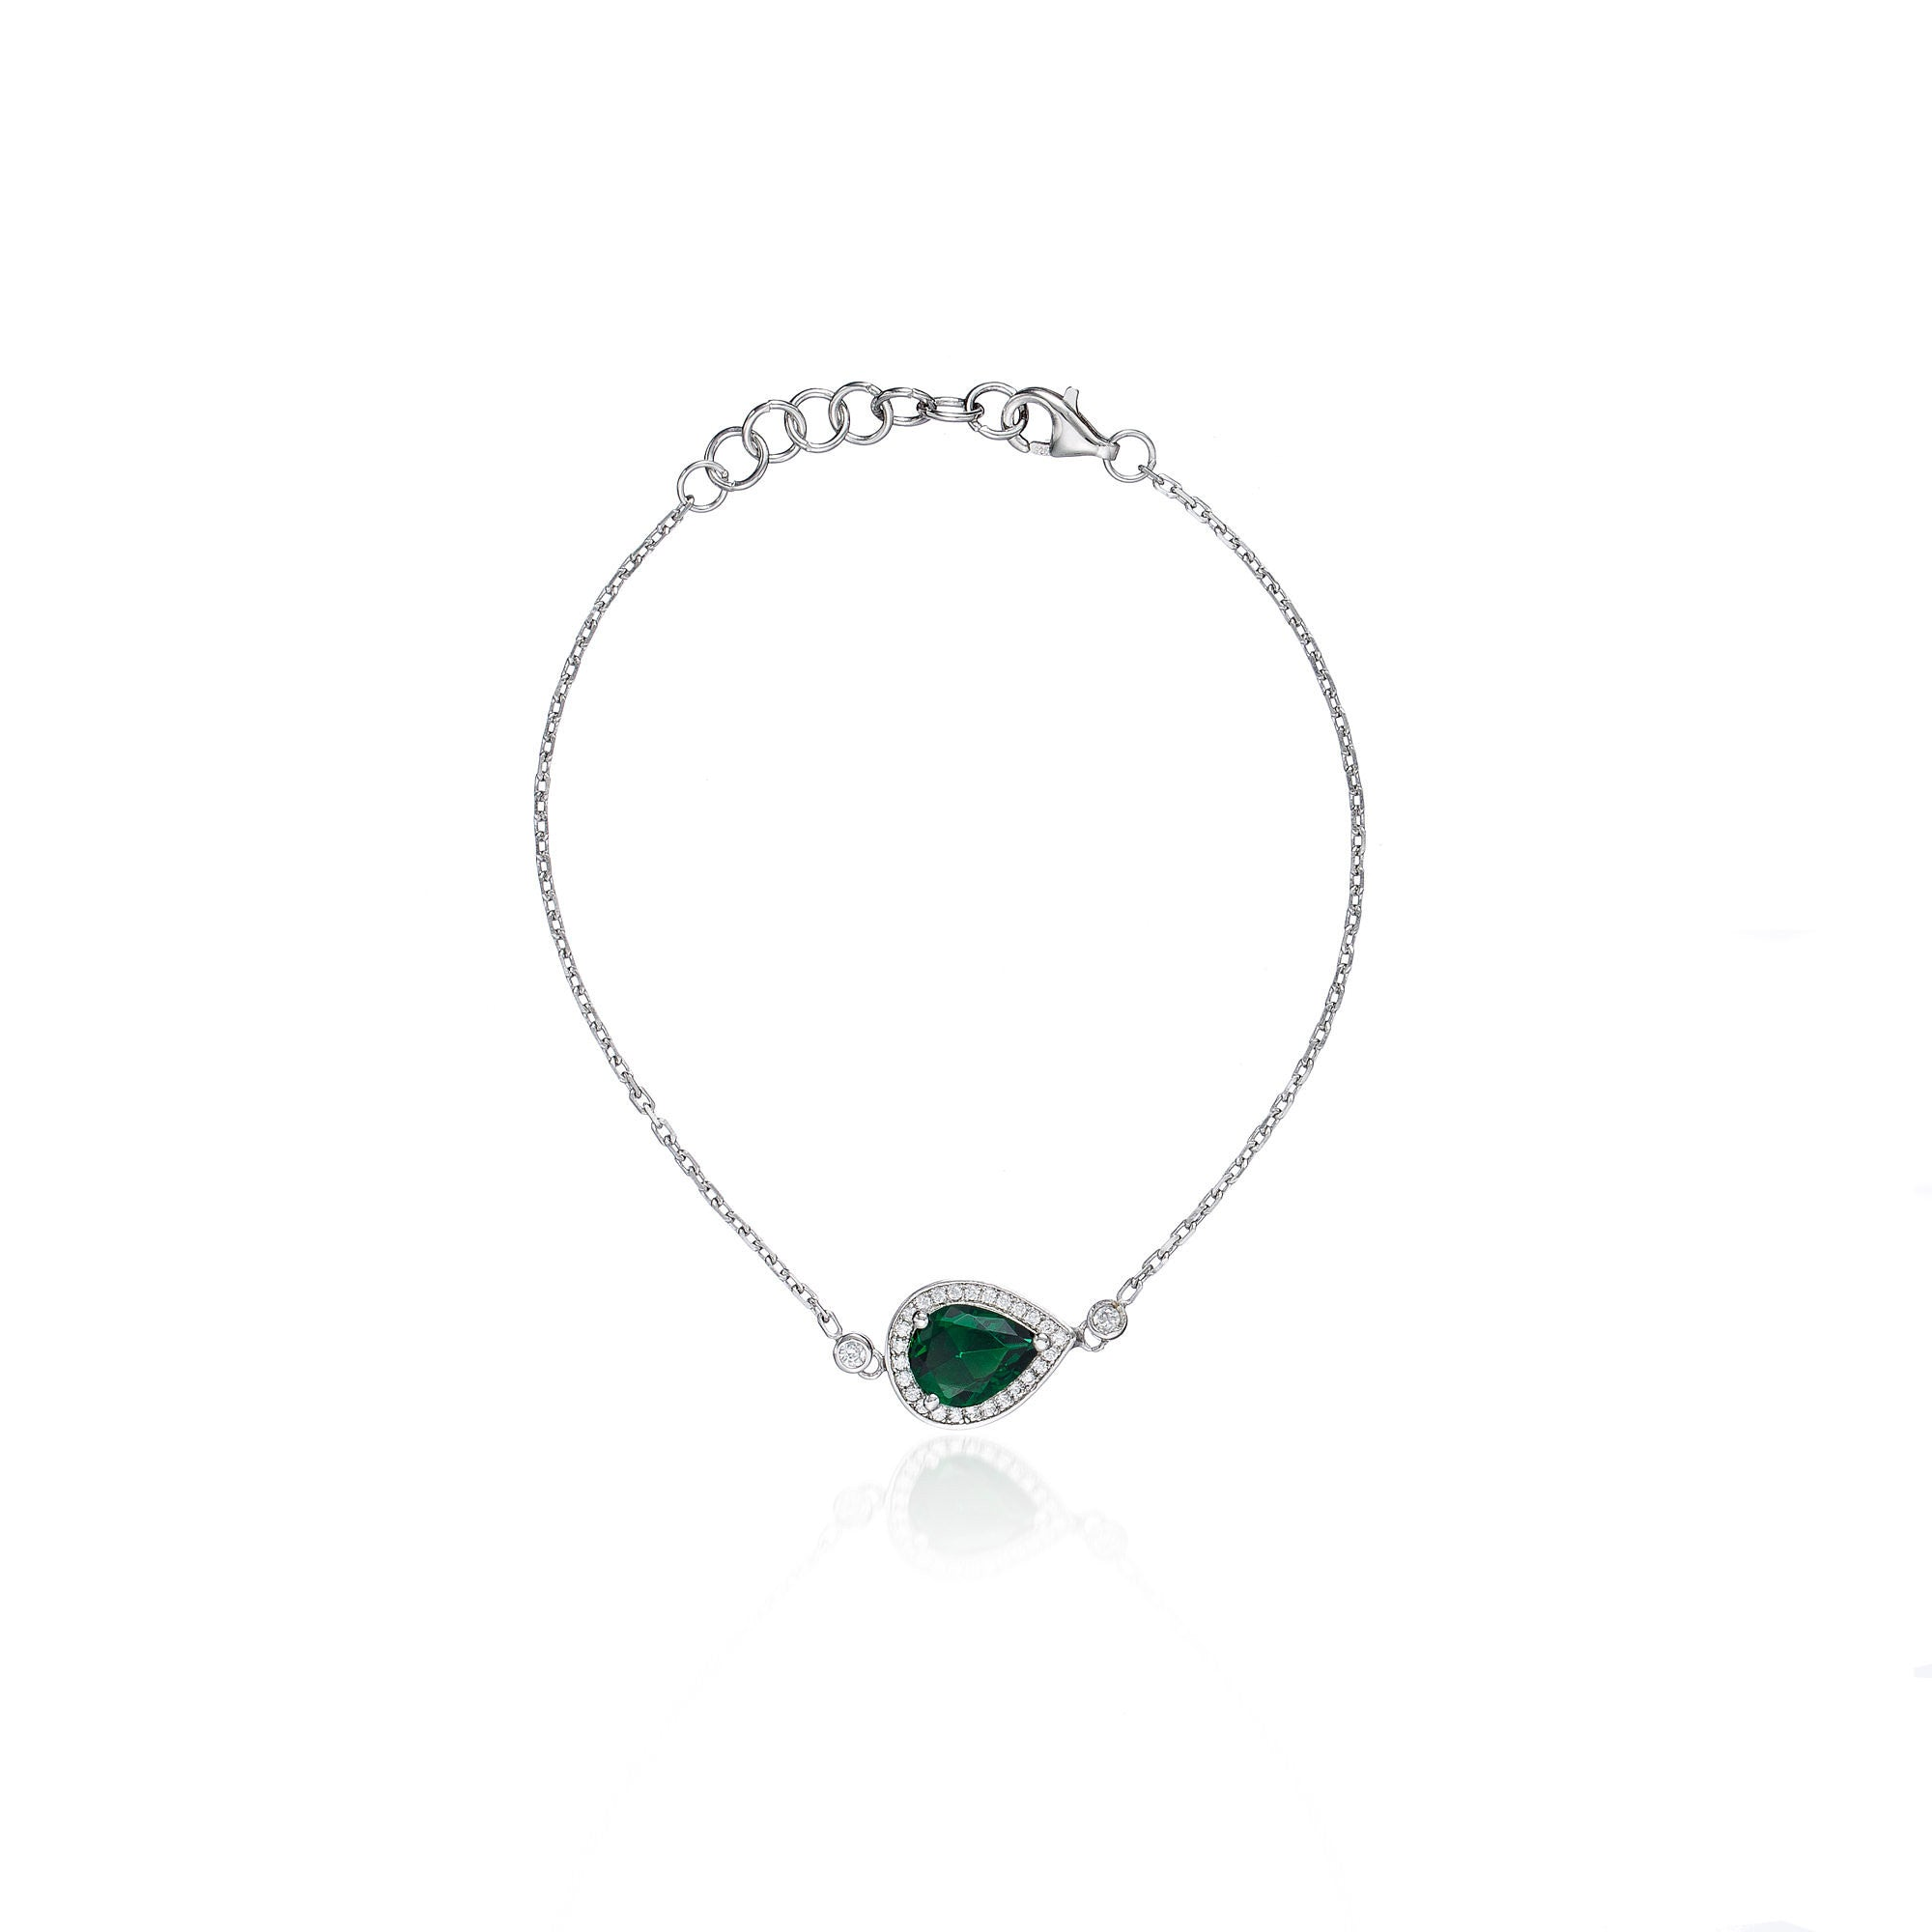 emerald charm created pendant stone dancing product necklace diamond centres